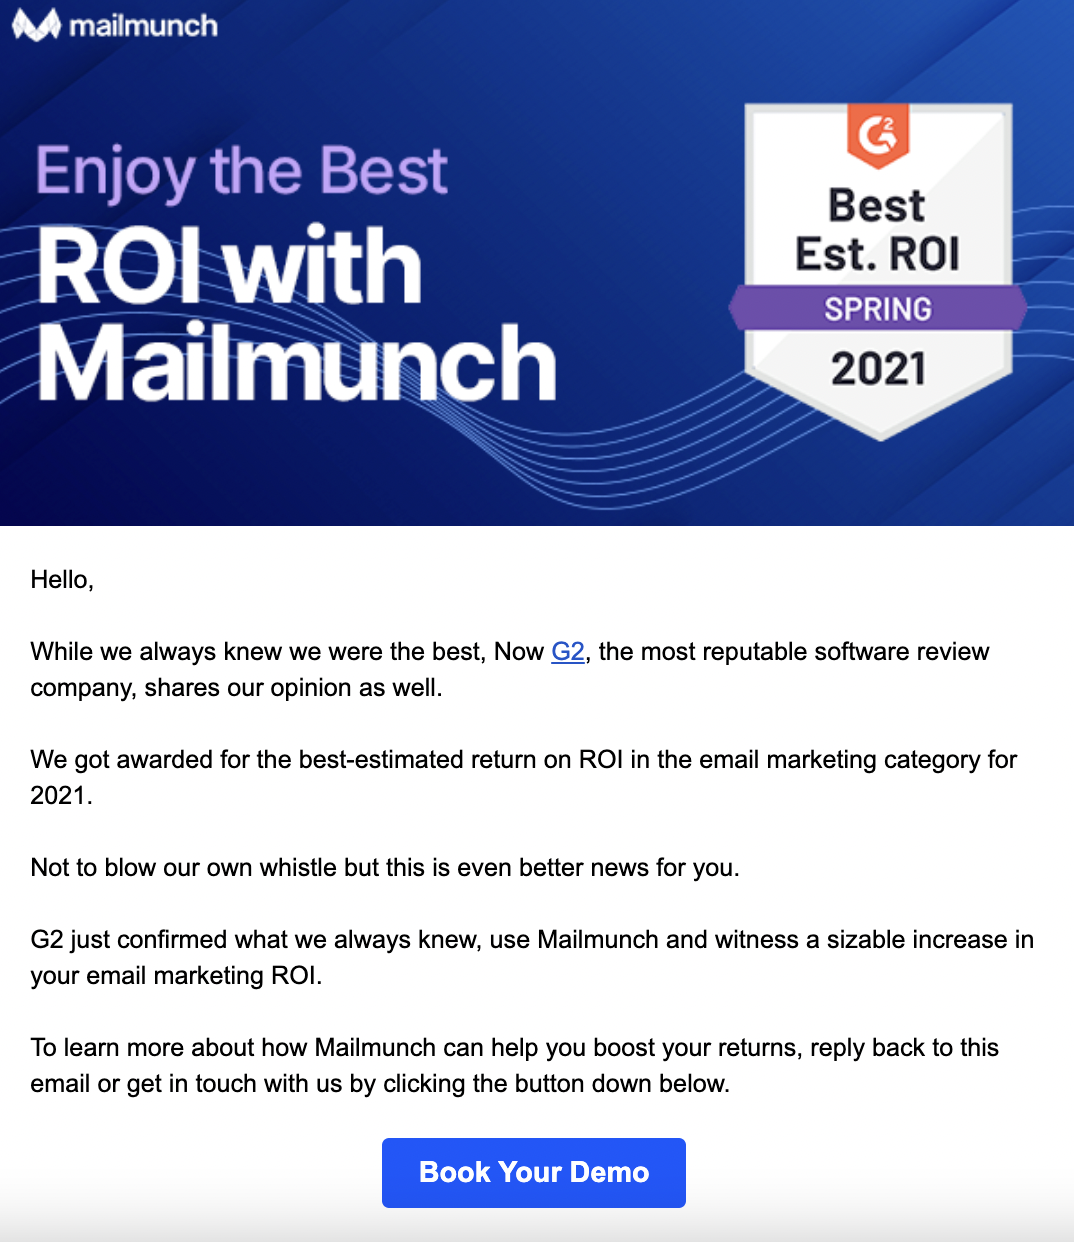 An email from Mailmunch showing the CTA button